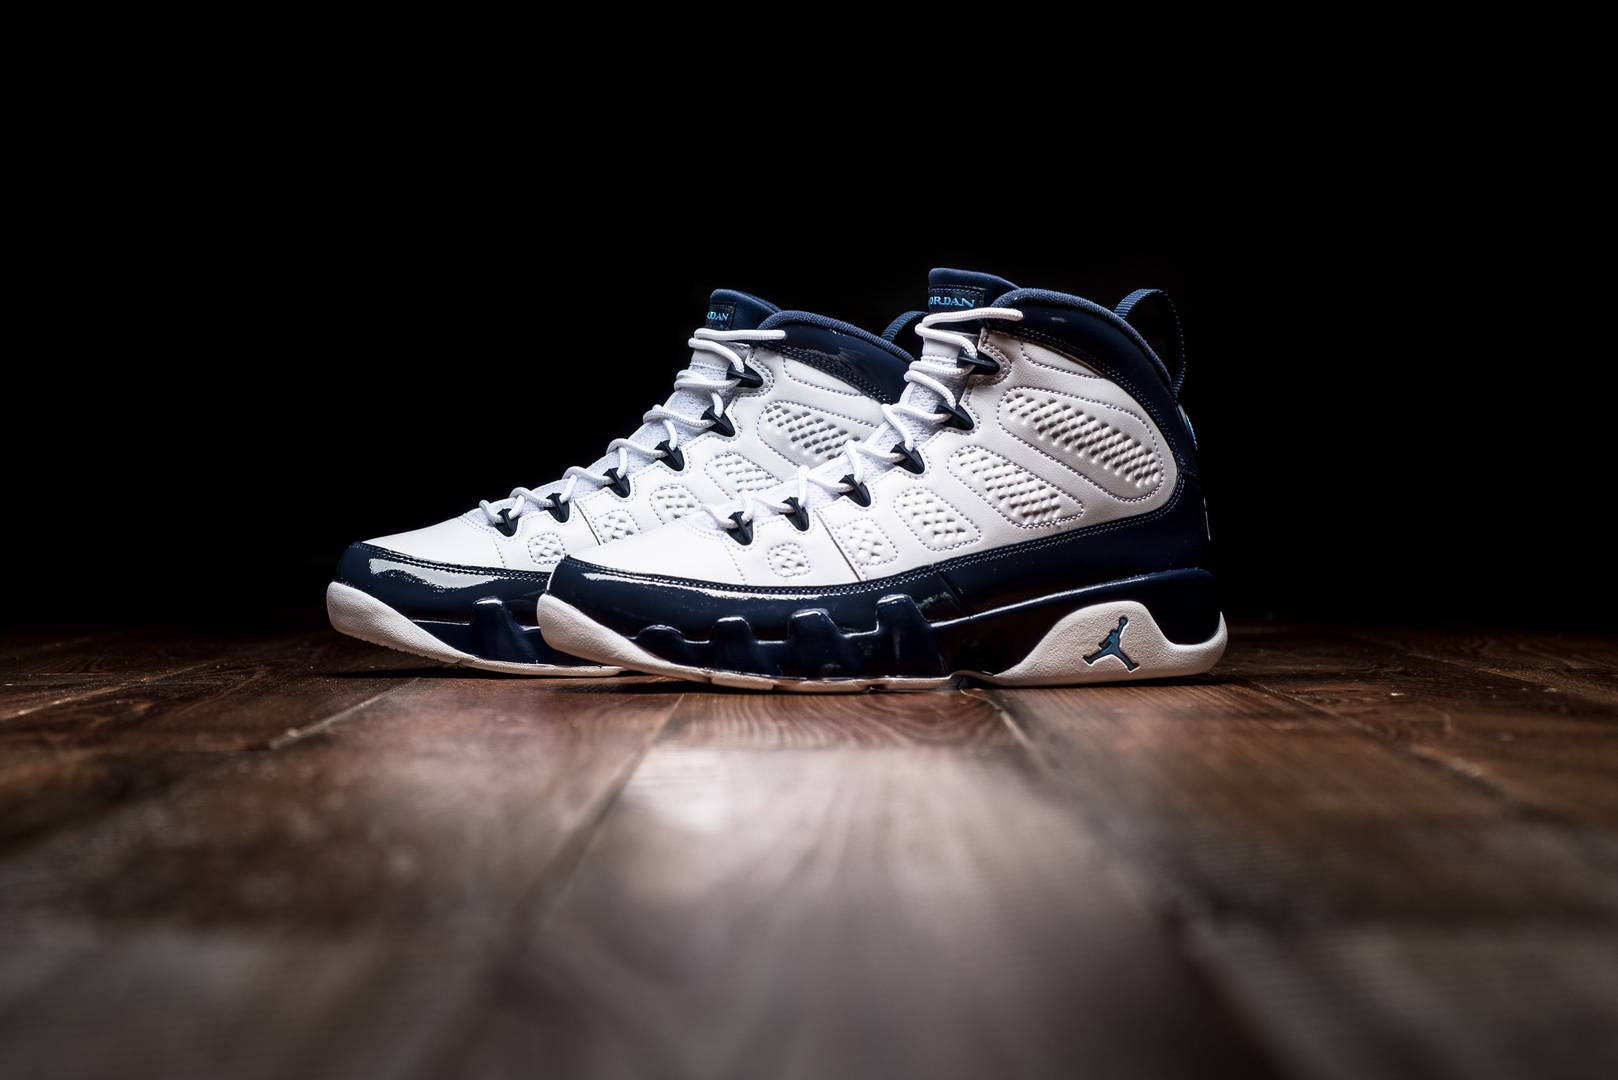 reputable site 6772a 952ba Air Jordan 9